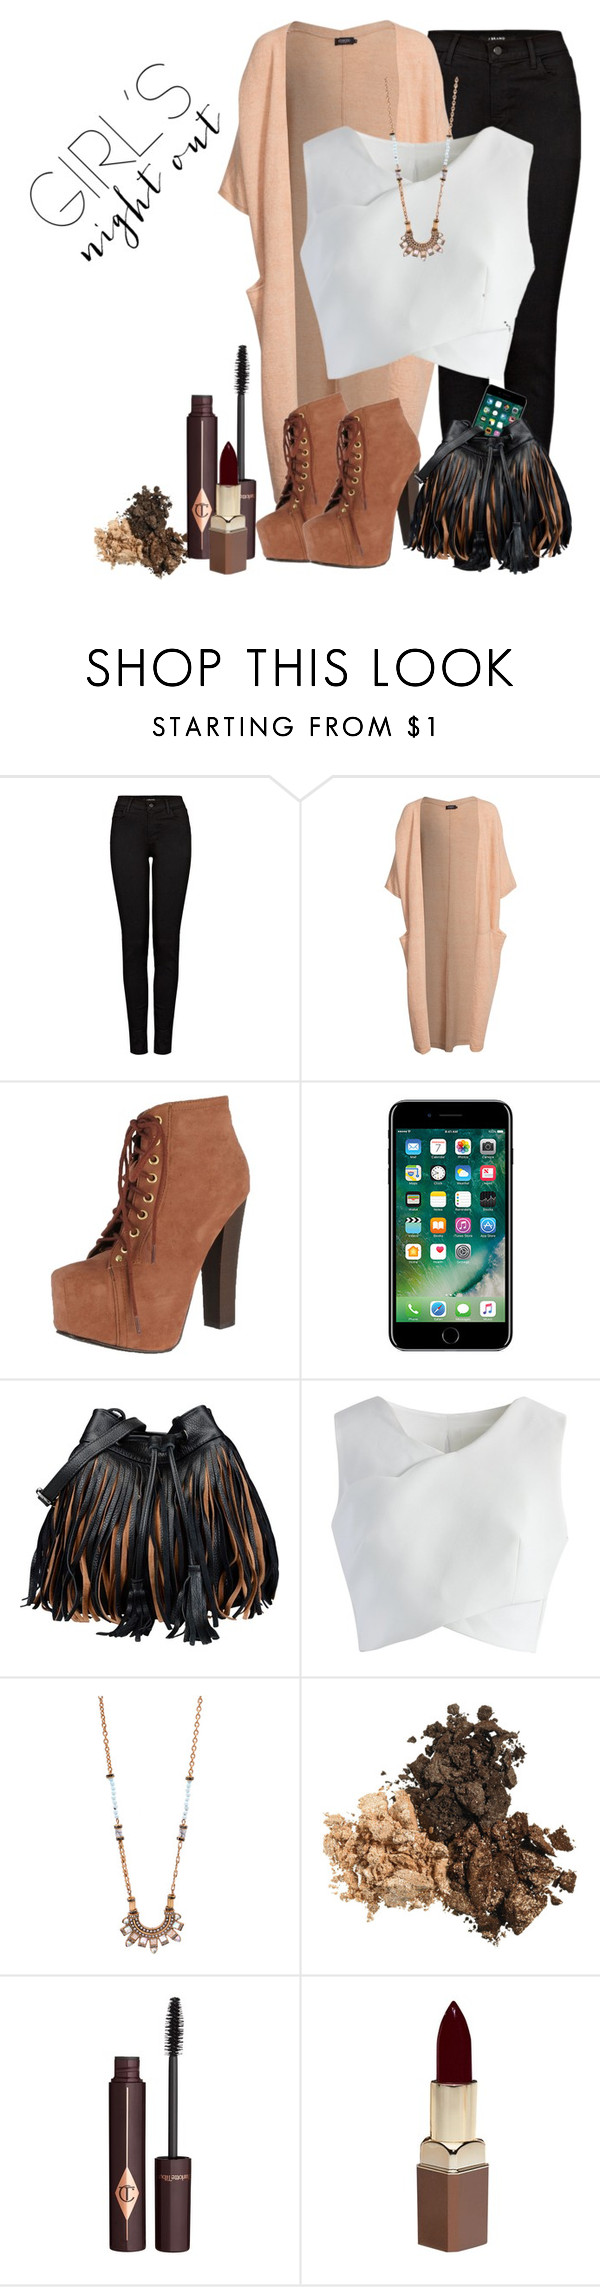 """""""Samantha"""" by catsanddogs-563 ❤ liked on Polyvore featuring J Brand, Soaked in Luxury, Breckelle's, George J. Love, Chicwish, Charlotte Tilbury and Fashion Fair"""